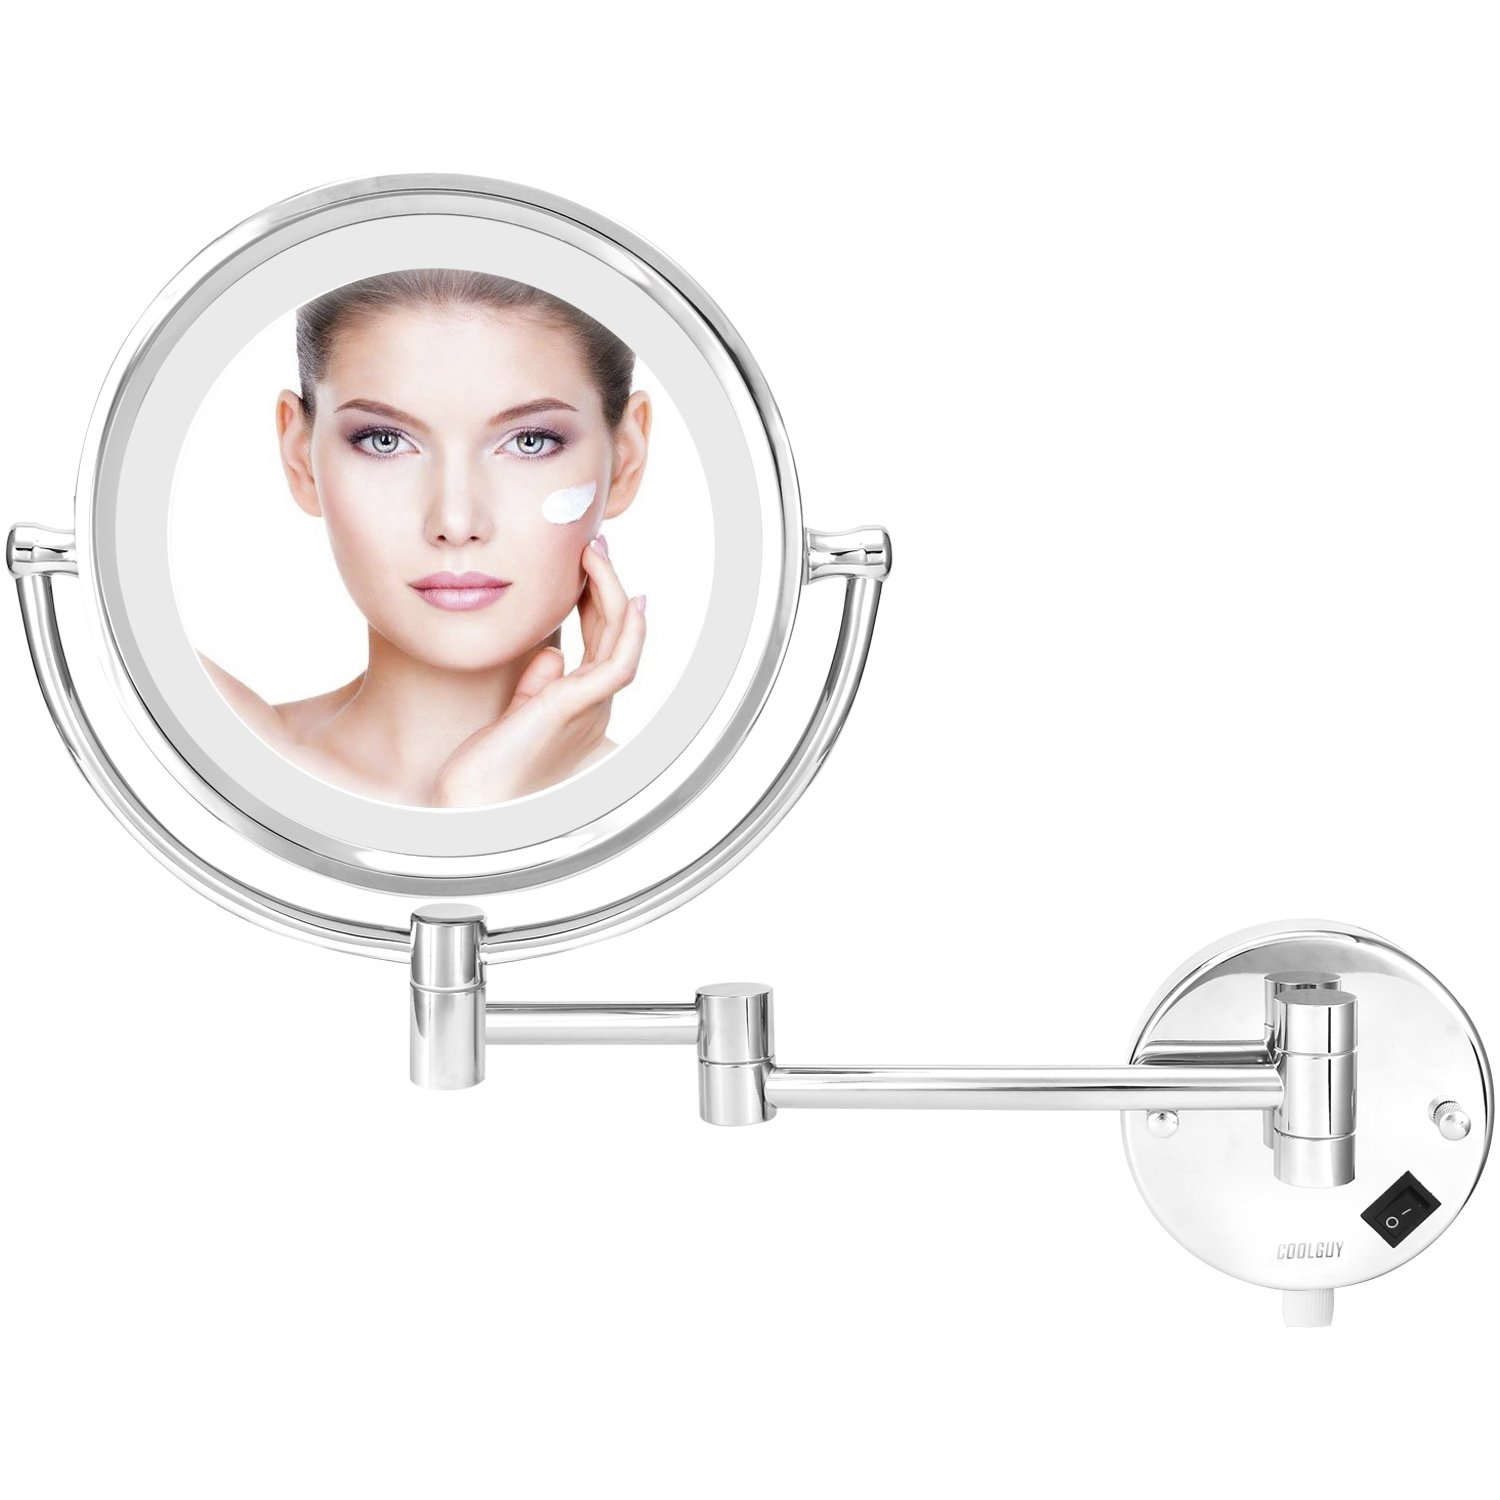 Lighted Makeup Mirror, Wall Mount Mirror , Wall Vanity Mirror with 8.5- Inch, 1x/10x Magnification for Makeup, Shaving in Bedroom or Bathroom, Chrome by COOLGUY